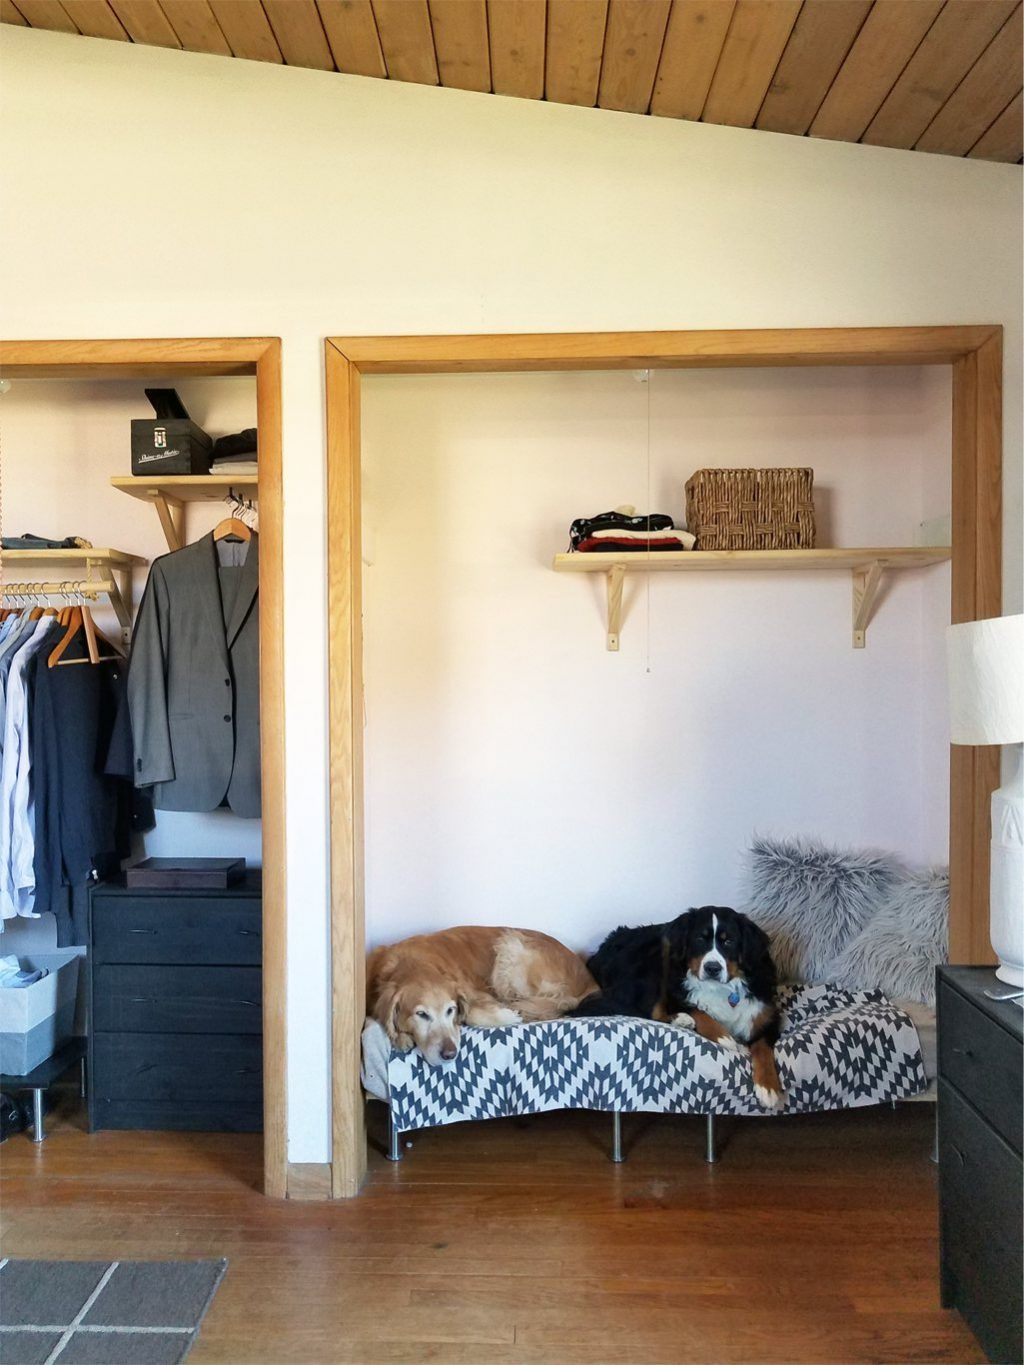 Diy Raised Dog Bed From Mdf And Inexpensive Legs From Ikea Raised Dog Beds Diy Raised Dog Bed Diy Dog Bed